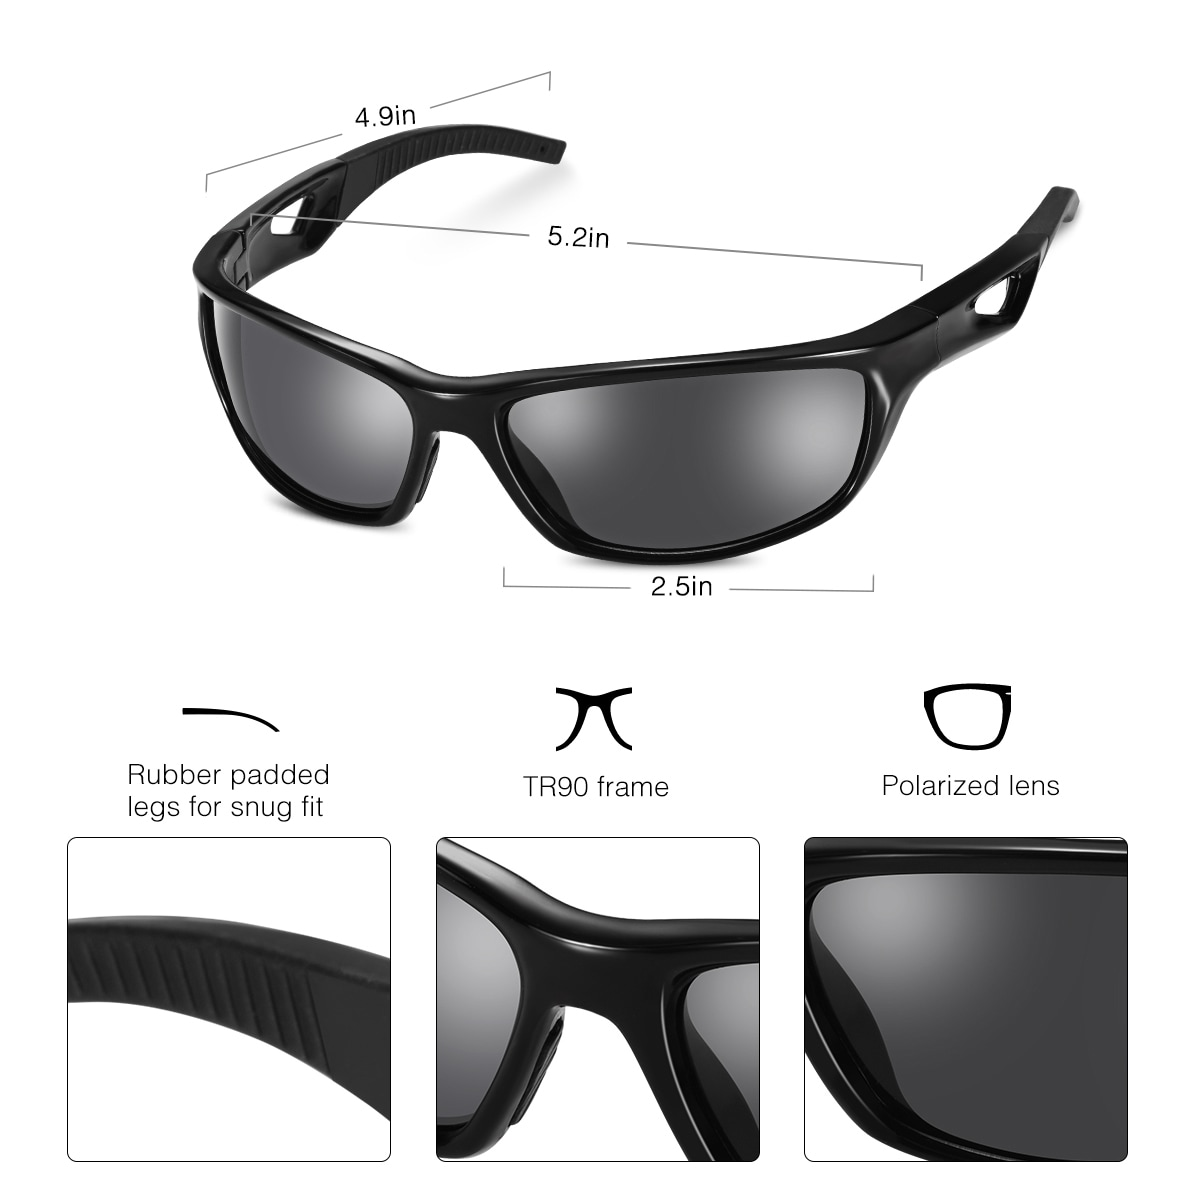 d6515a0617 Shop Coutlet Black Polarized Sports Sunglasses with TR90 Unbreakable Frame  for Skiing